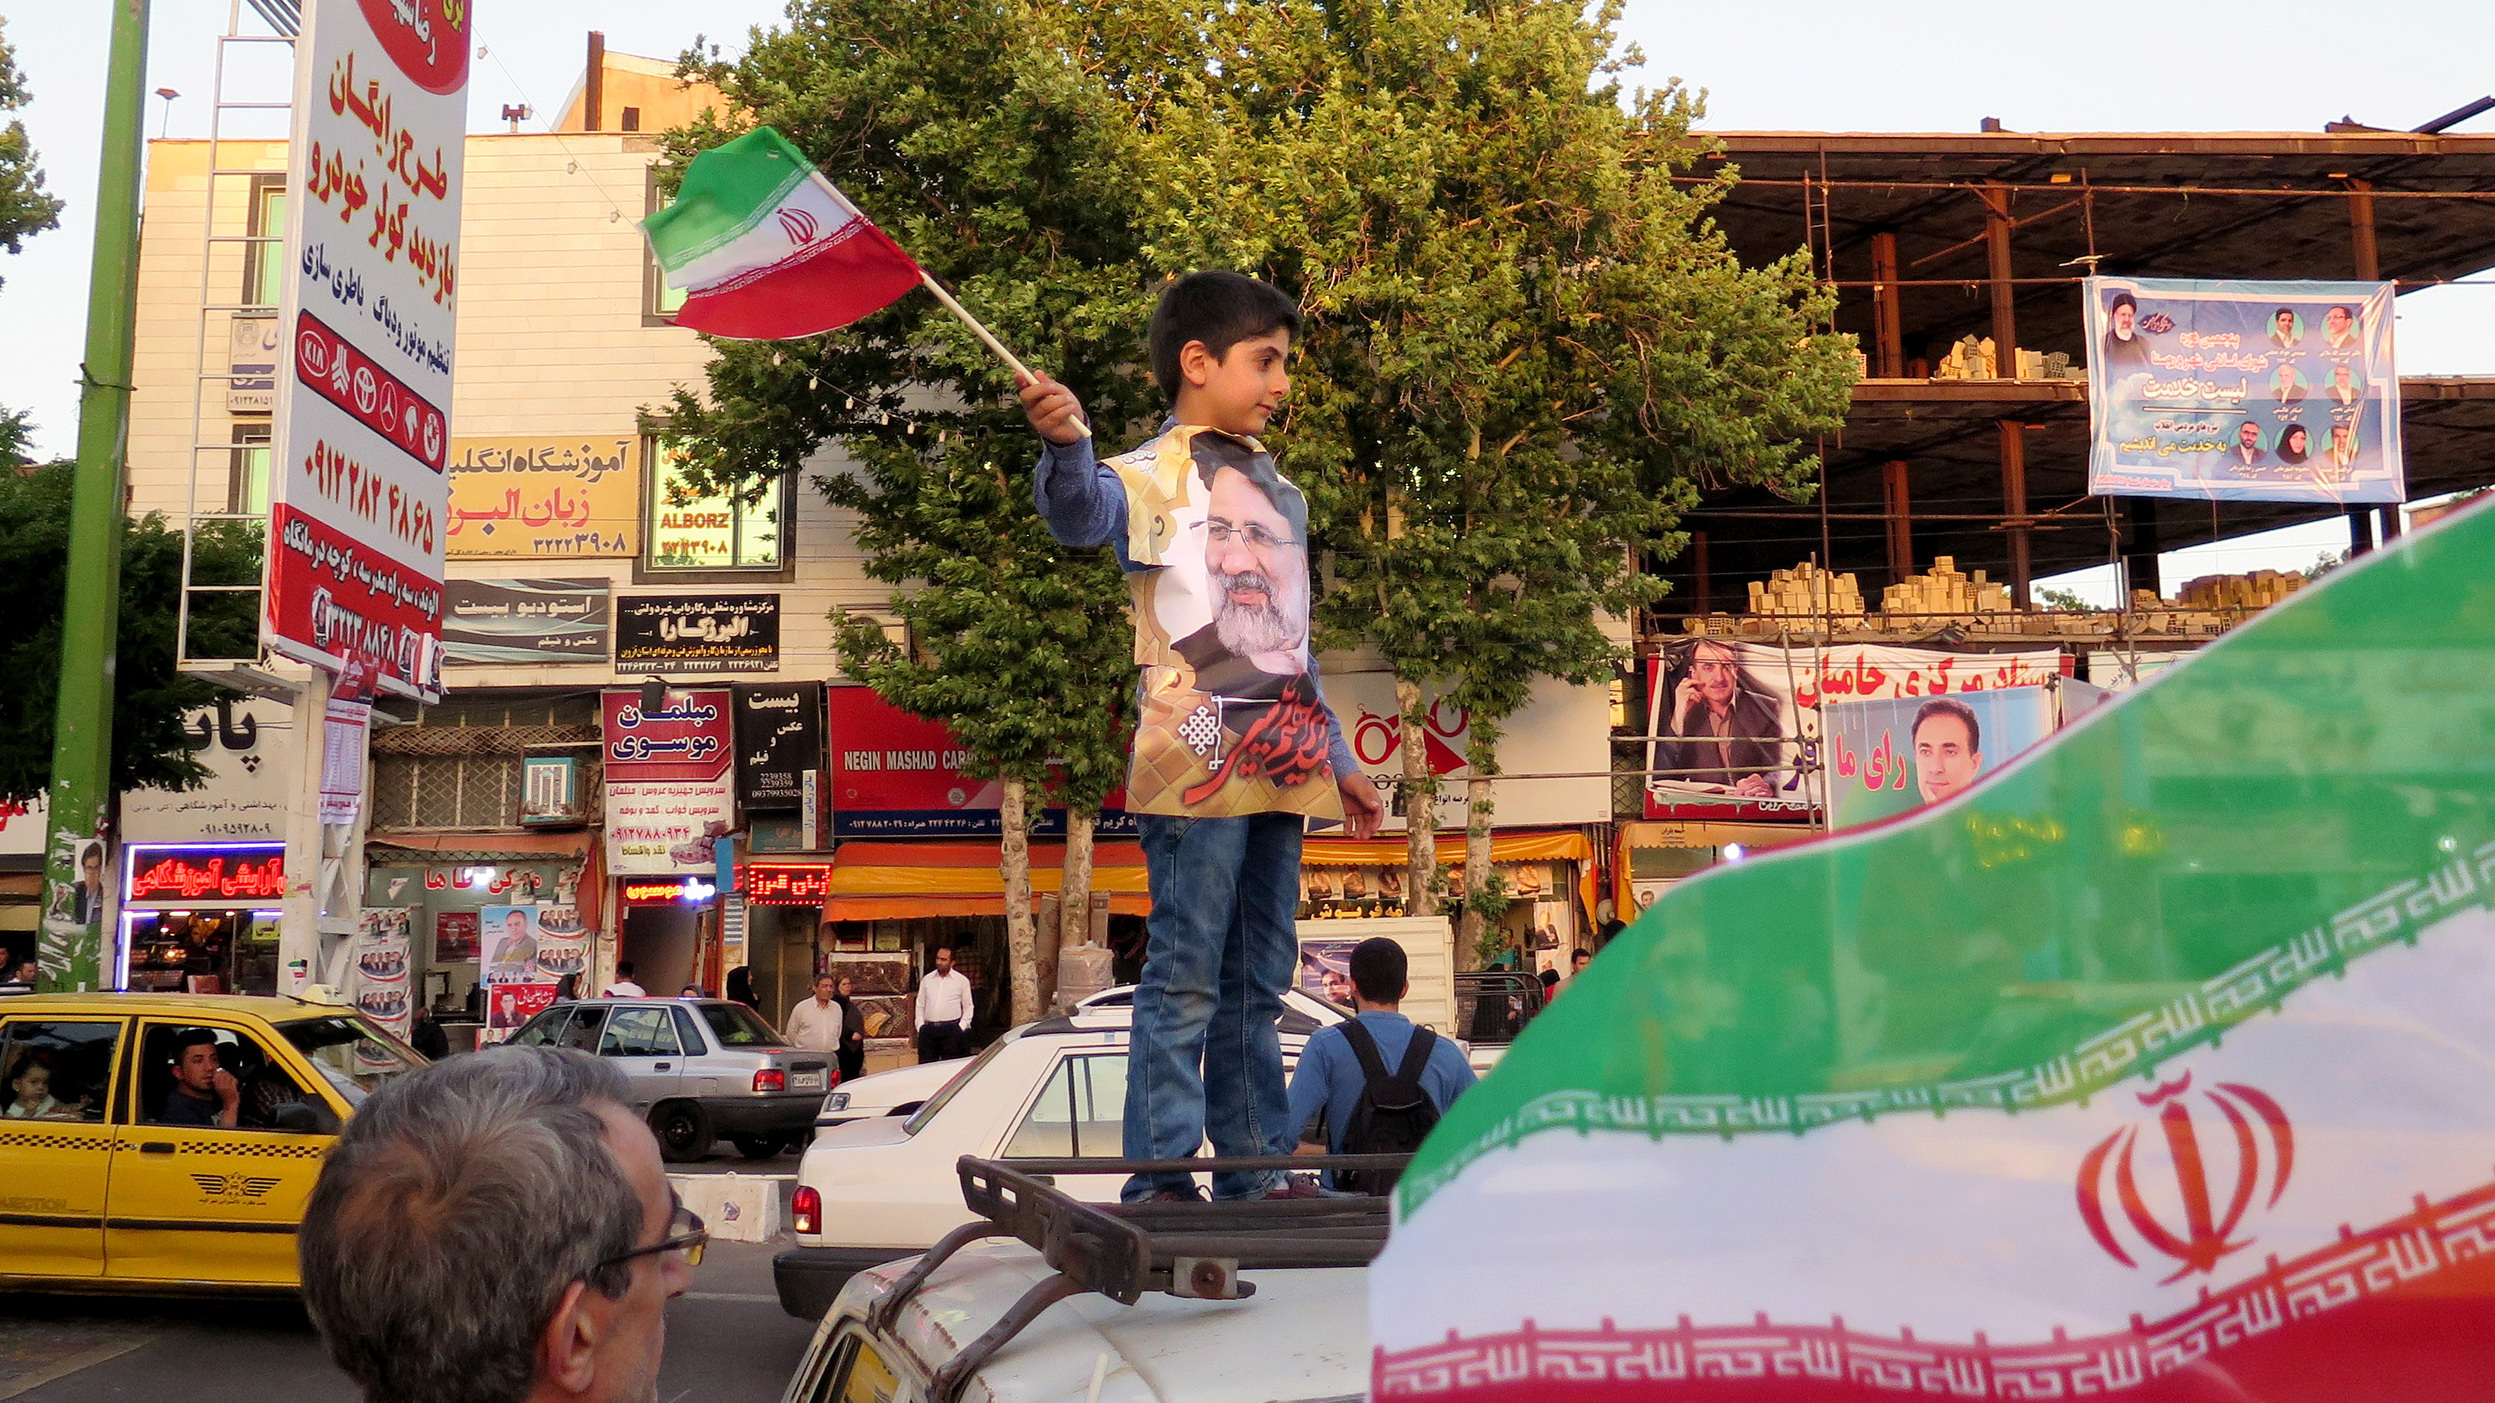 A boy waves an Iranian flag at a rally in Qazvin on Wednesday for the conservative cleric Ebrahim Raisi, the presidential candidate pictured on the boy's shirt.     (Kevin Leahy/NPR)